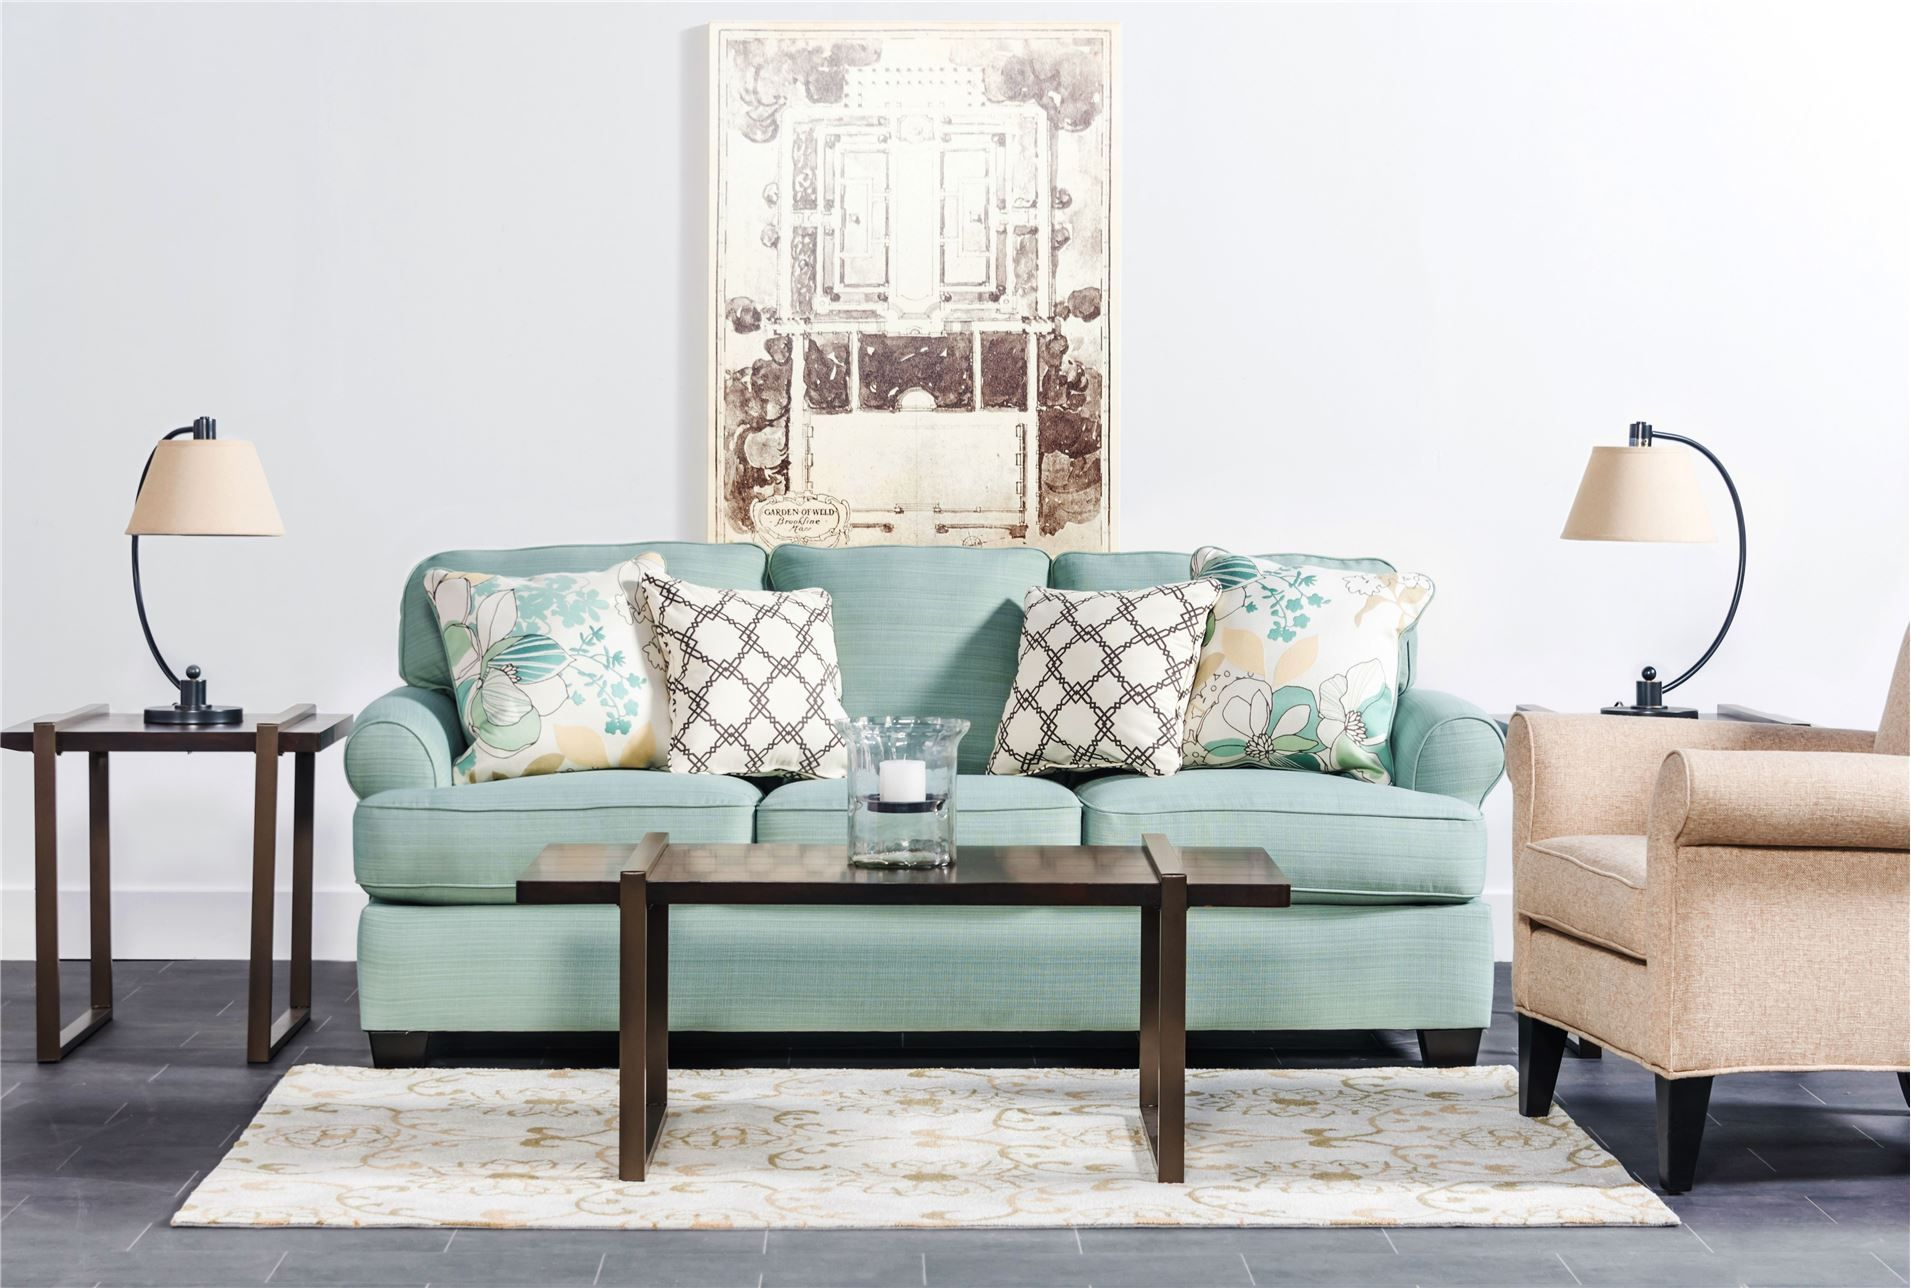 Daystar seafoam sofa 450 living spaces or ashley for Family sofa sets